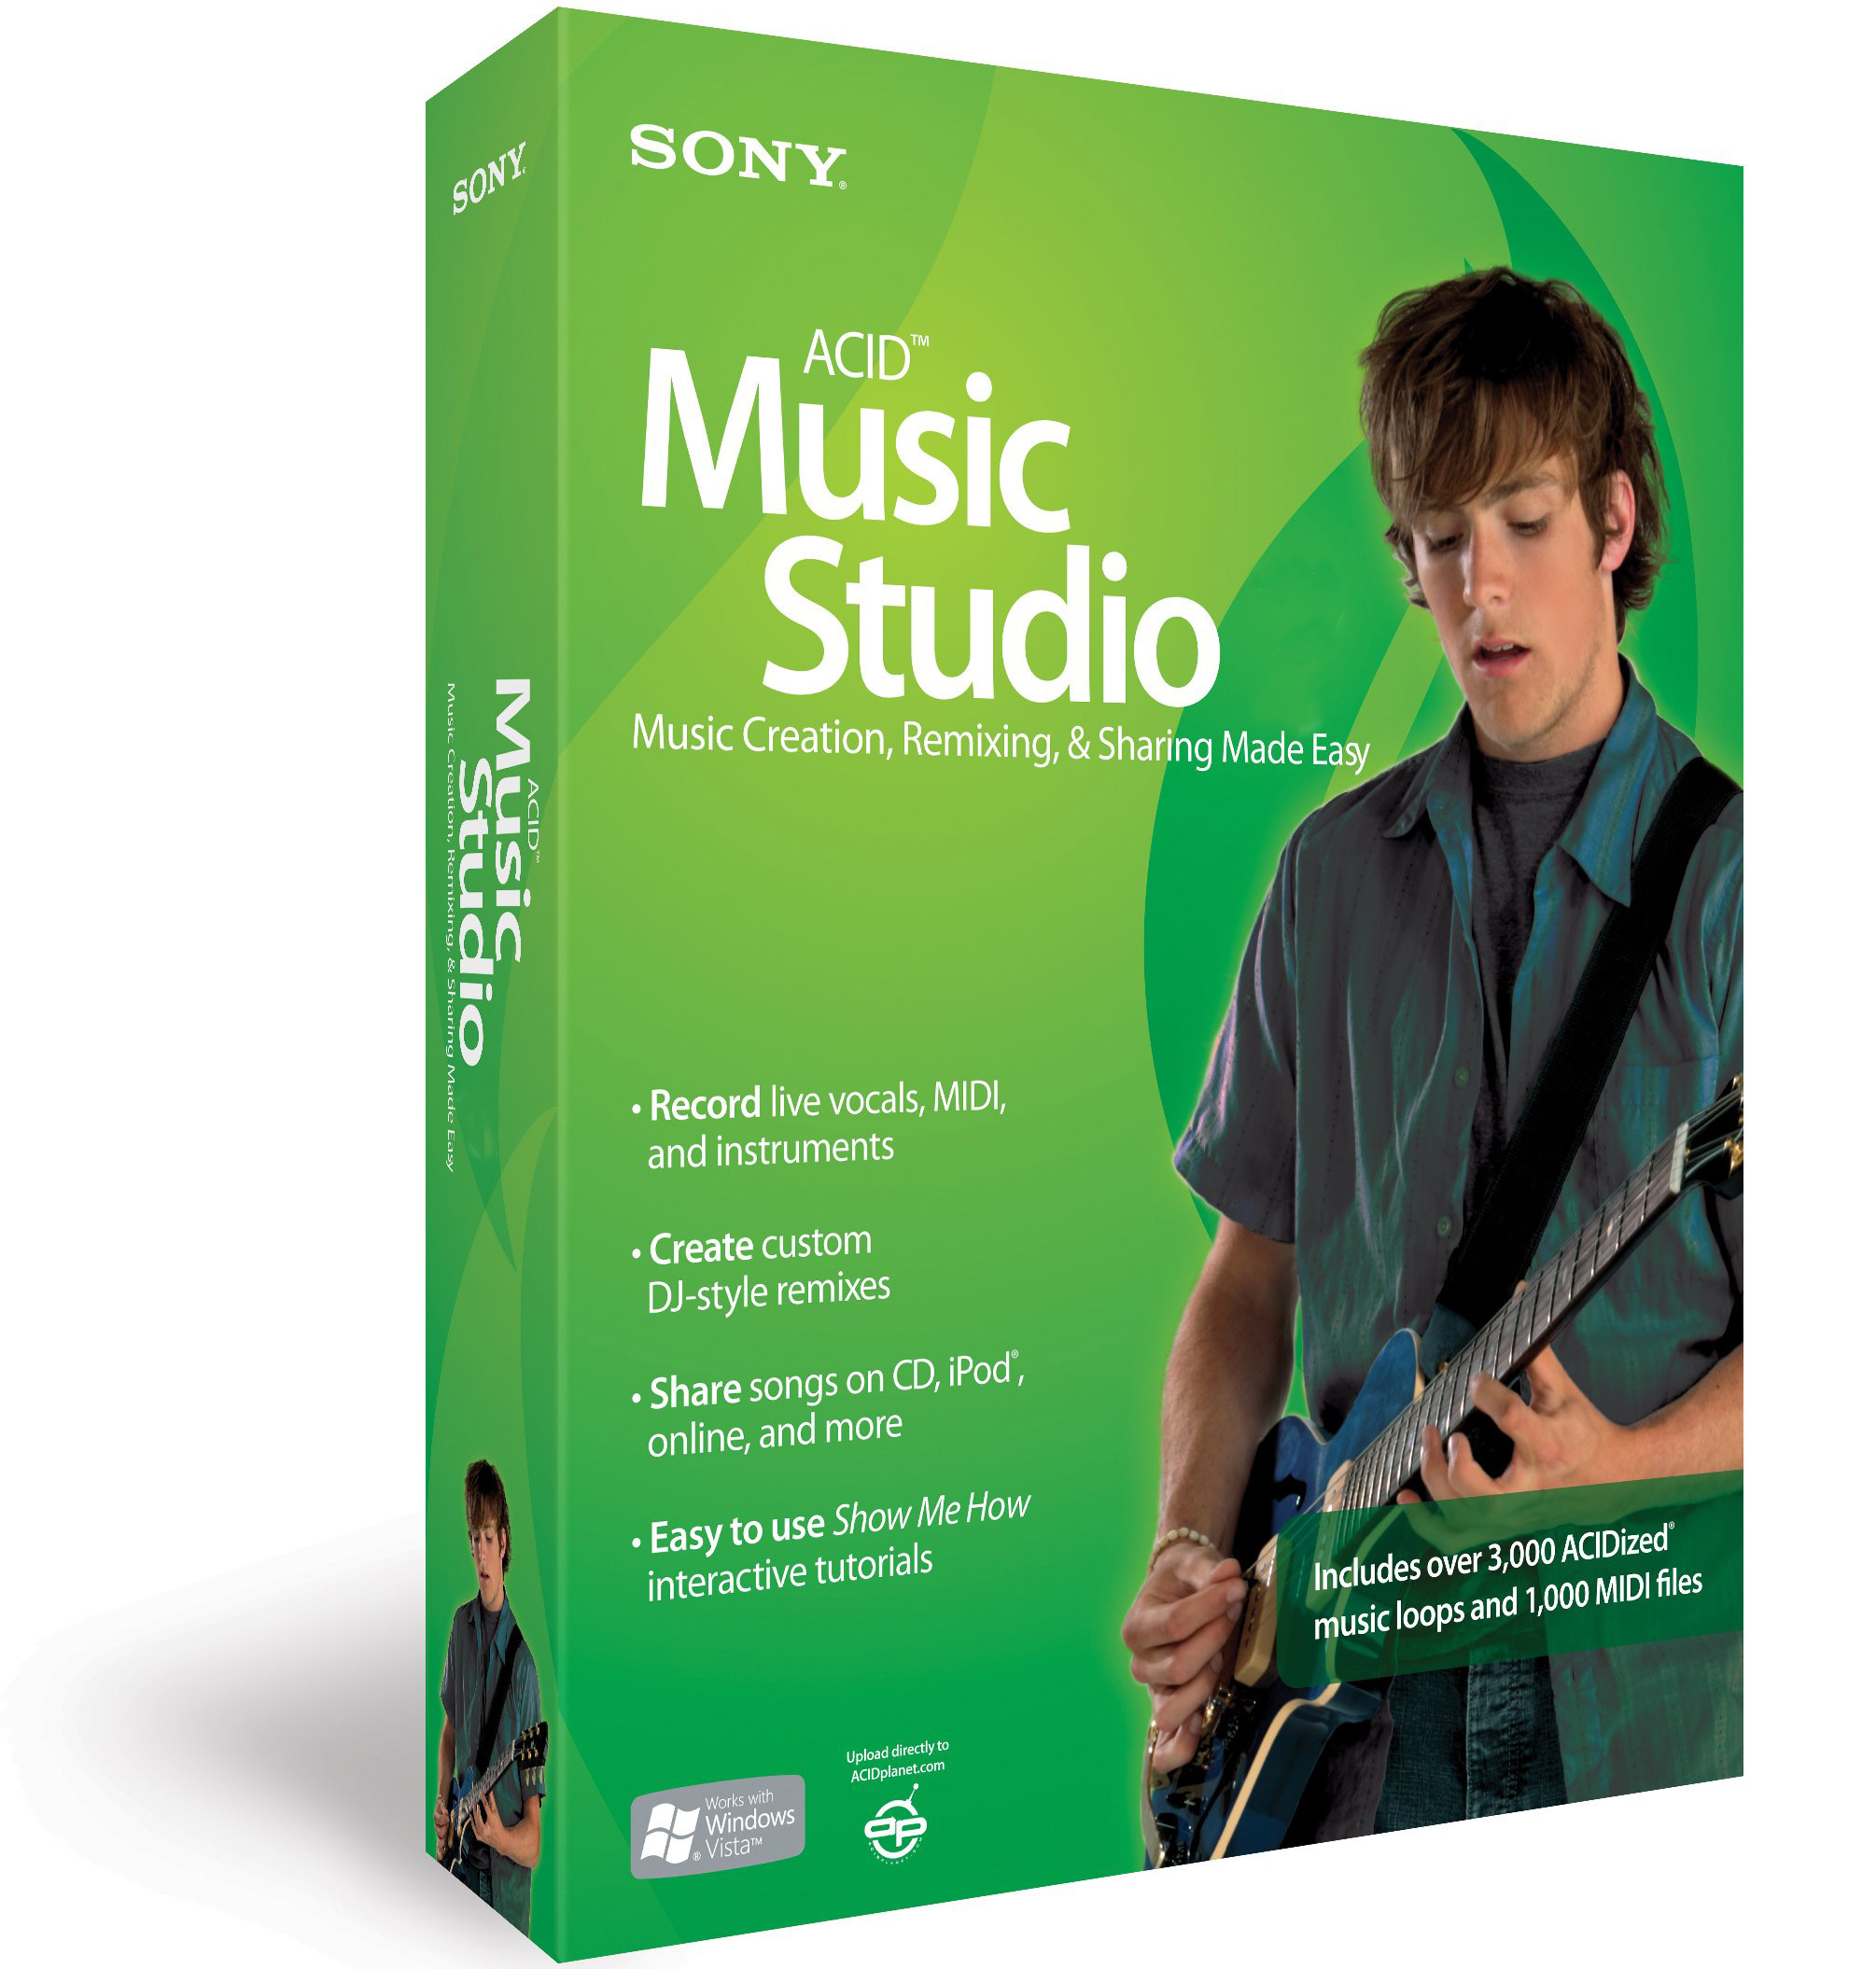 Sony acid music studio 10 free download (working serials! ) video.